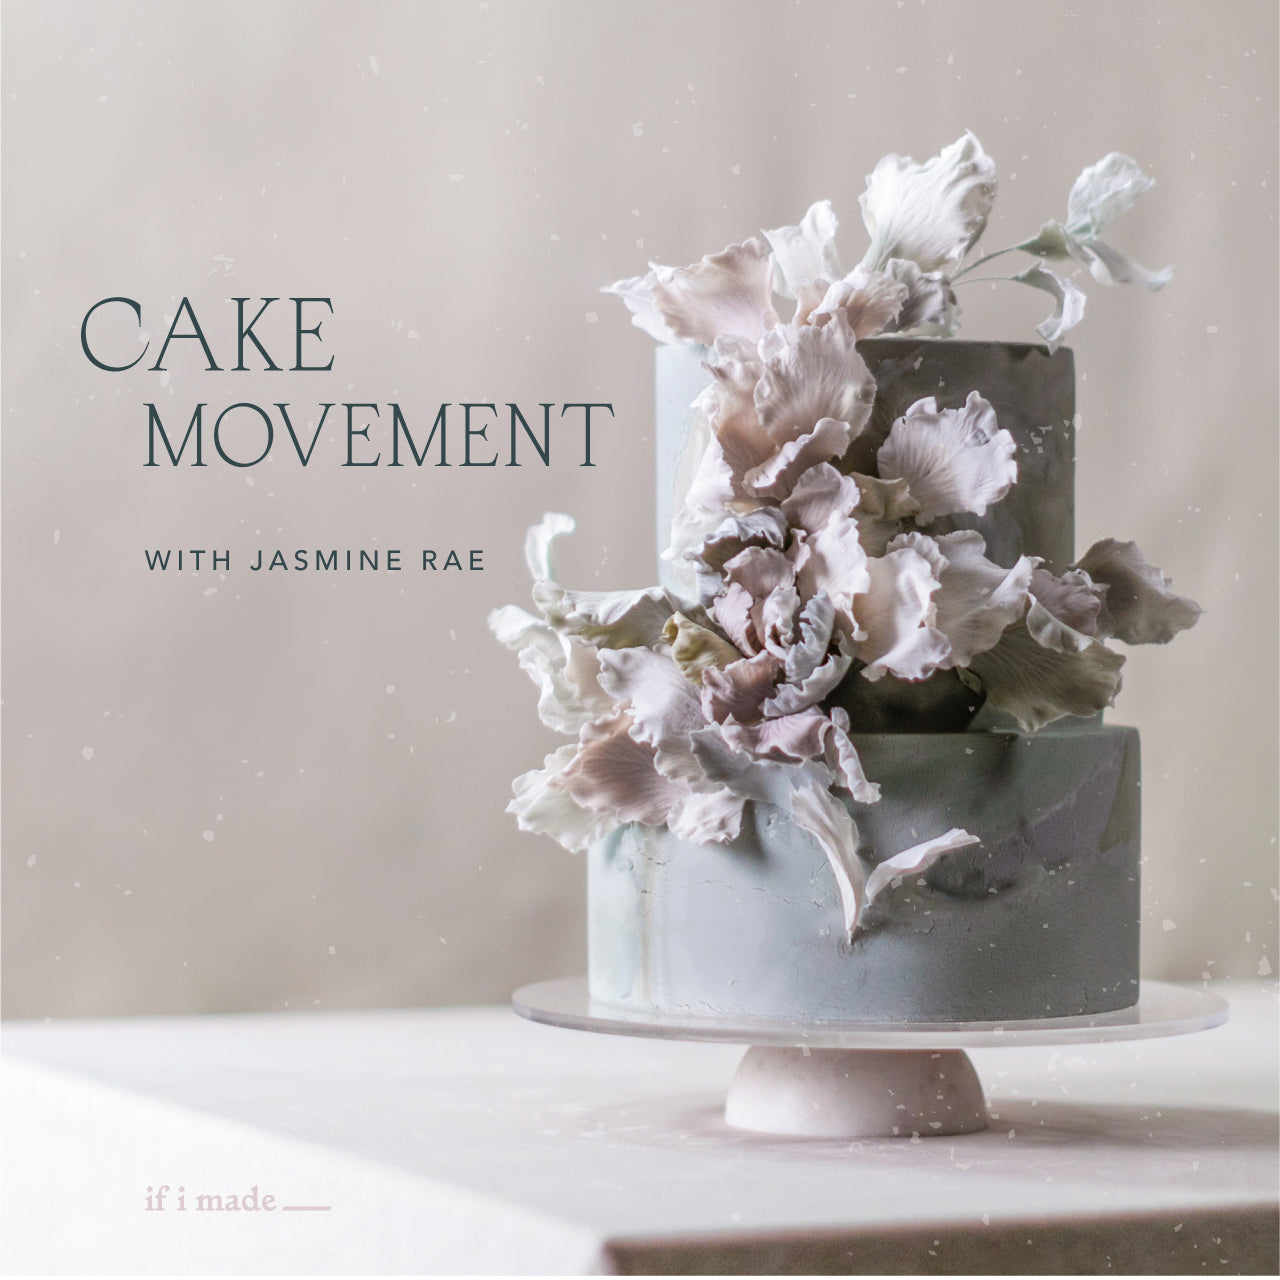 Retail Payment Plan: Cake Movement with Jasmine Rae - 6 Payments of $175